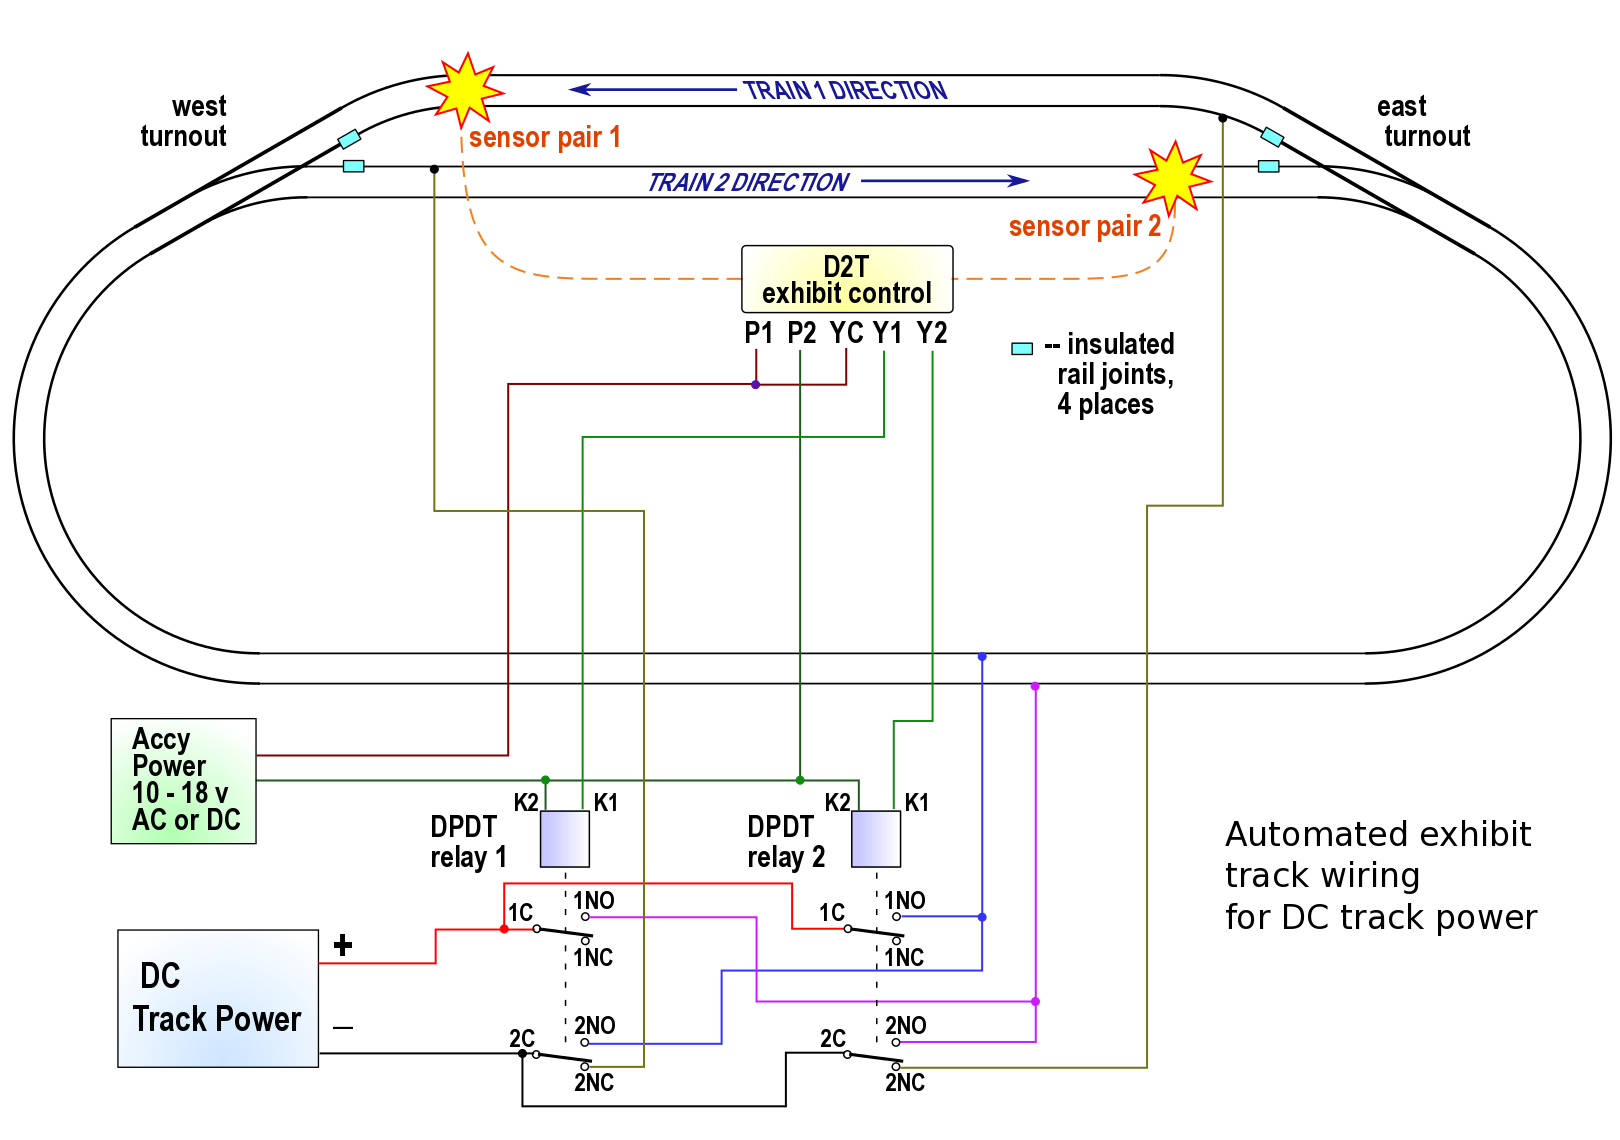 medium resolution of loop wiring diagram for dc